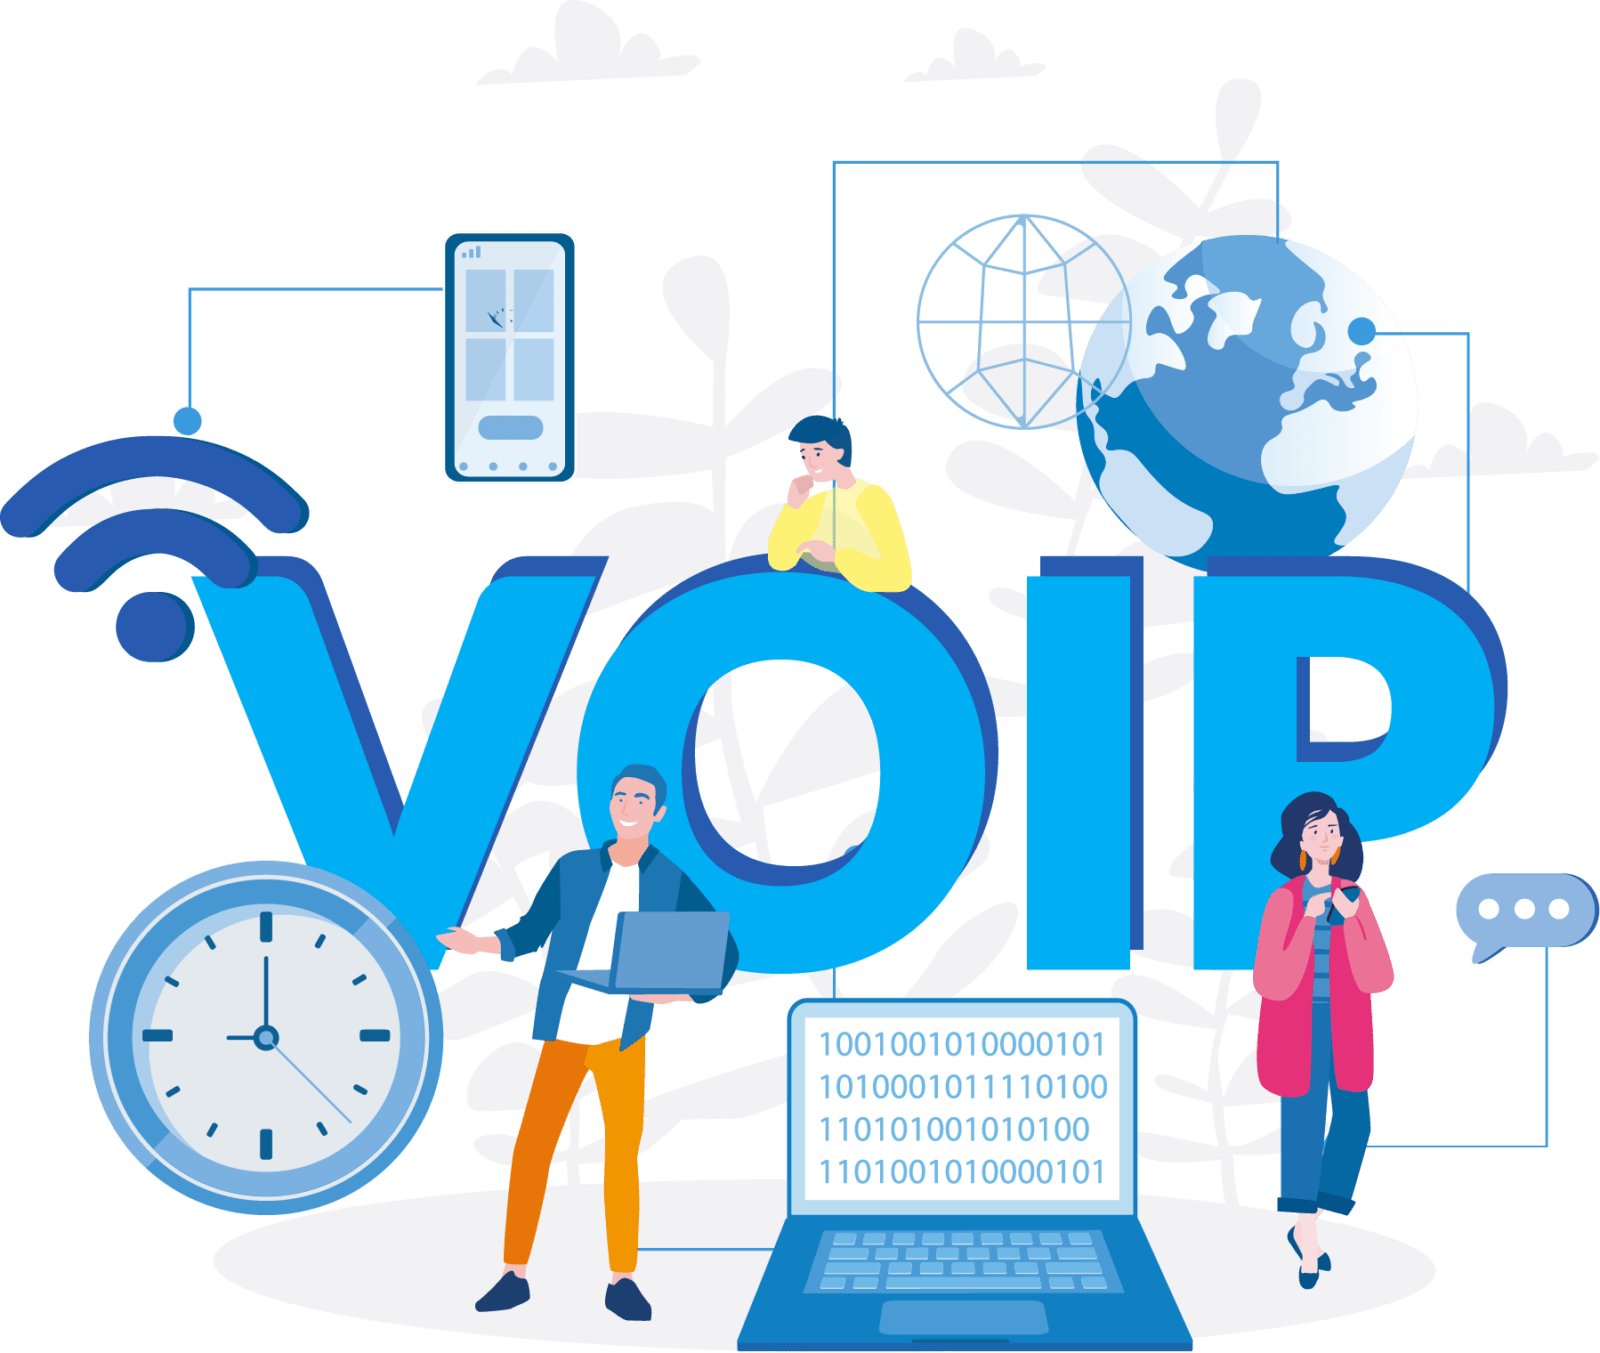 VoIP provider for Businesses